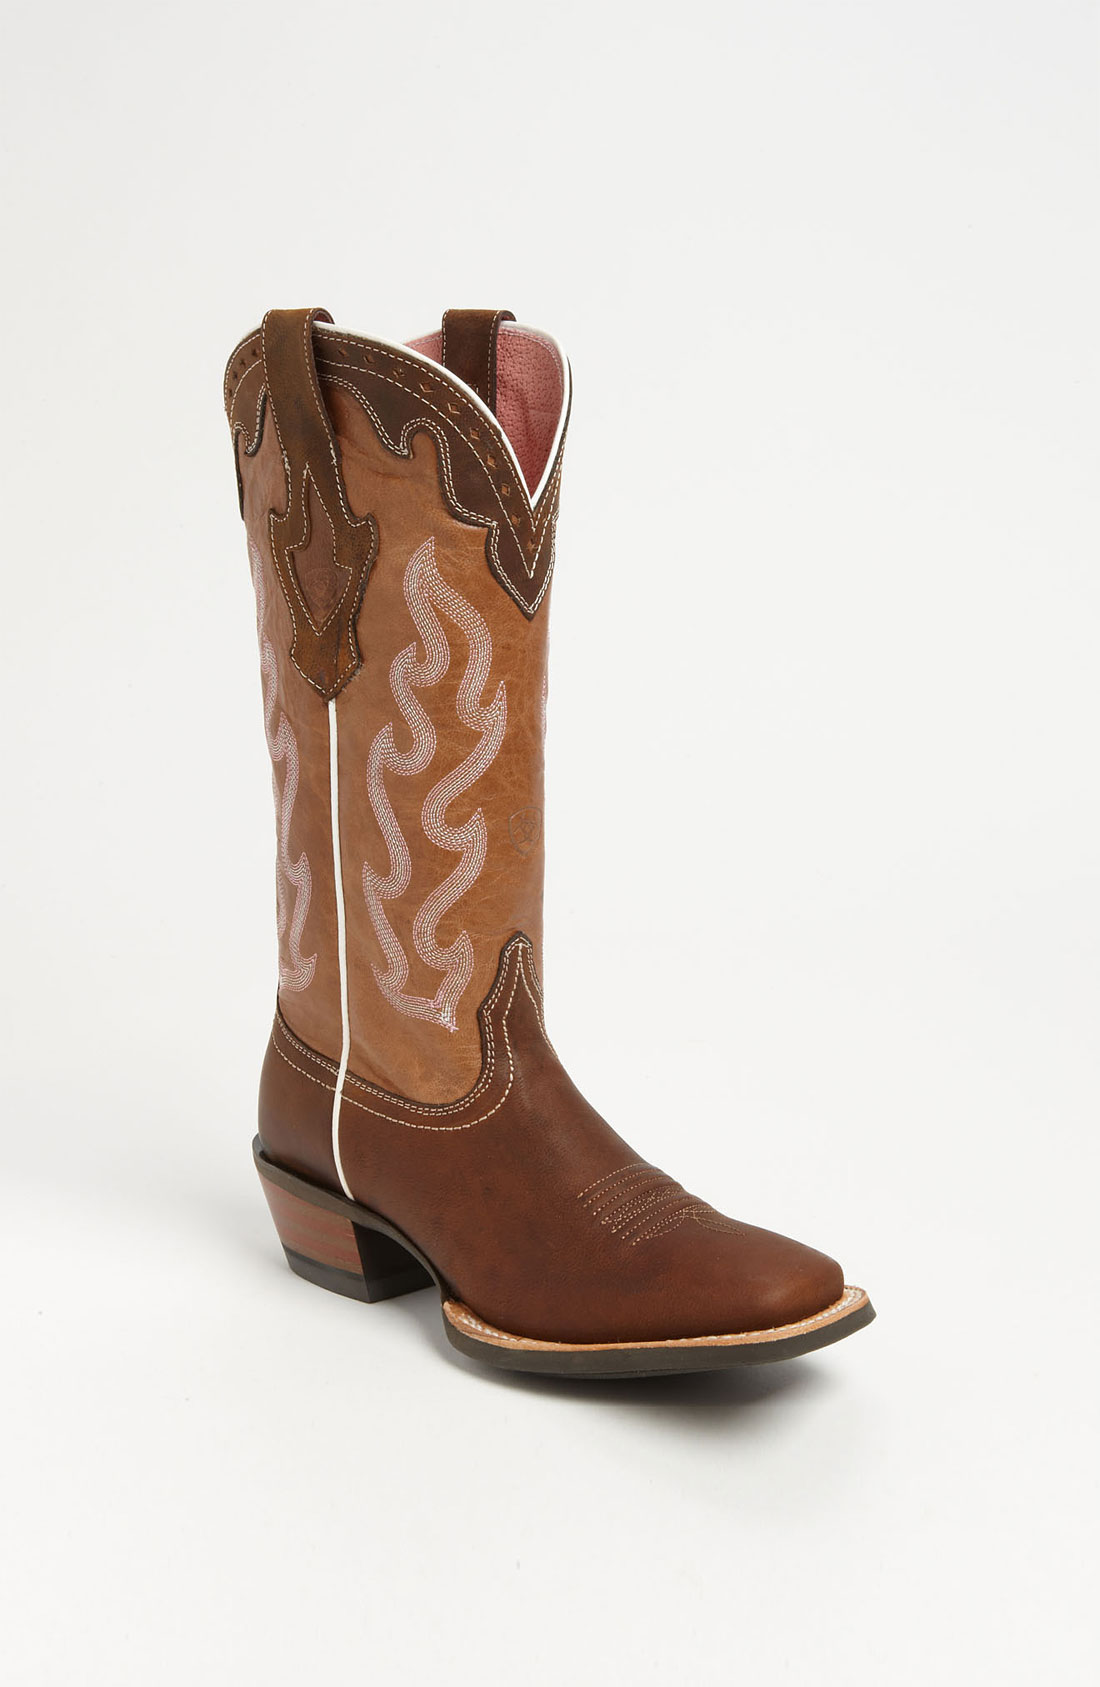 Ariat Crossfire Caliente Boot In Brown Weathered Brown